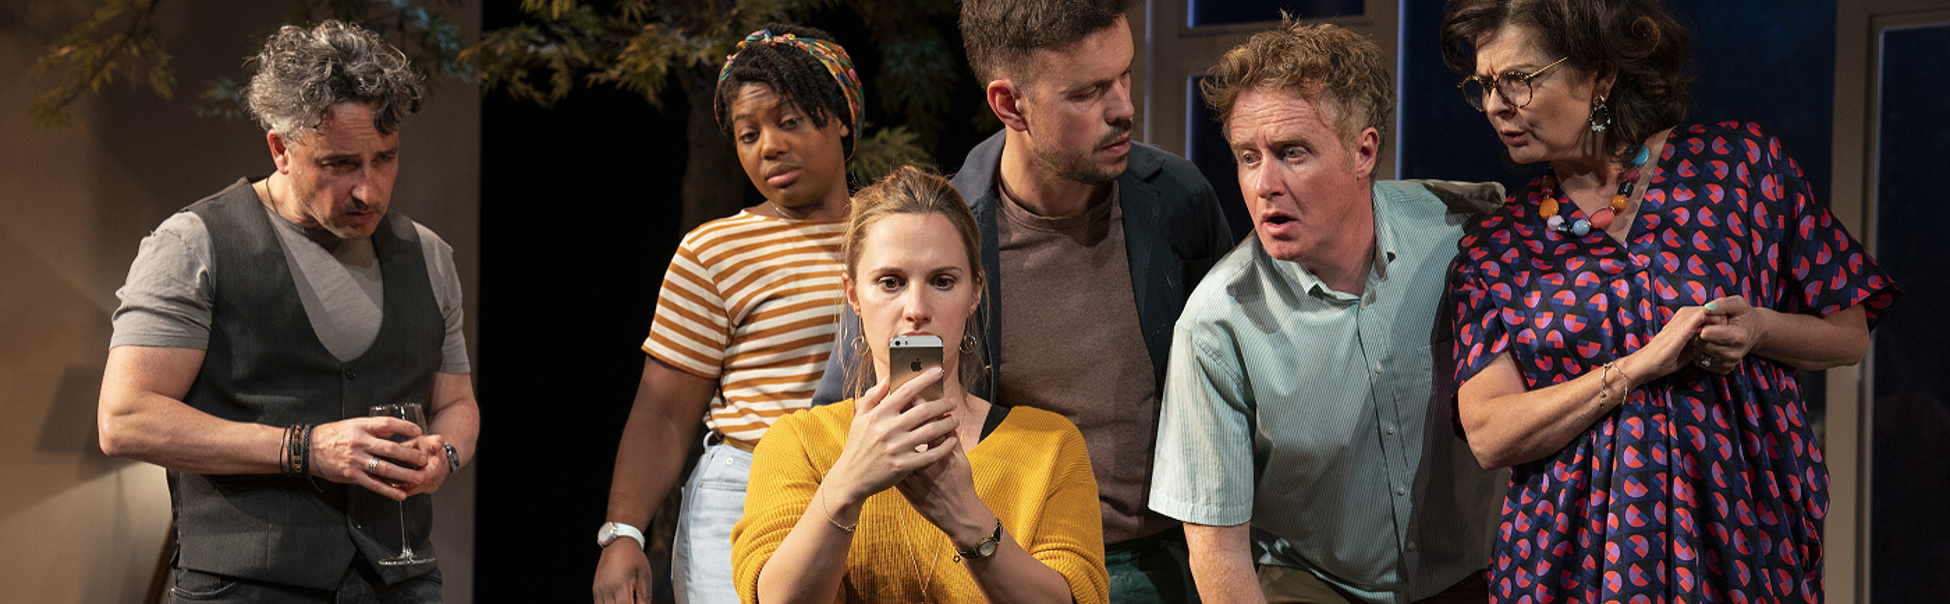 promo image for a play